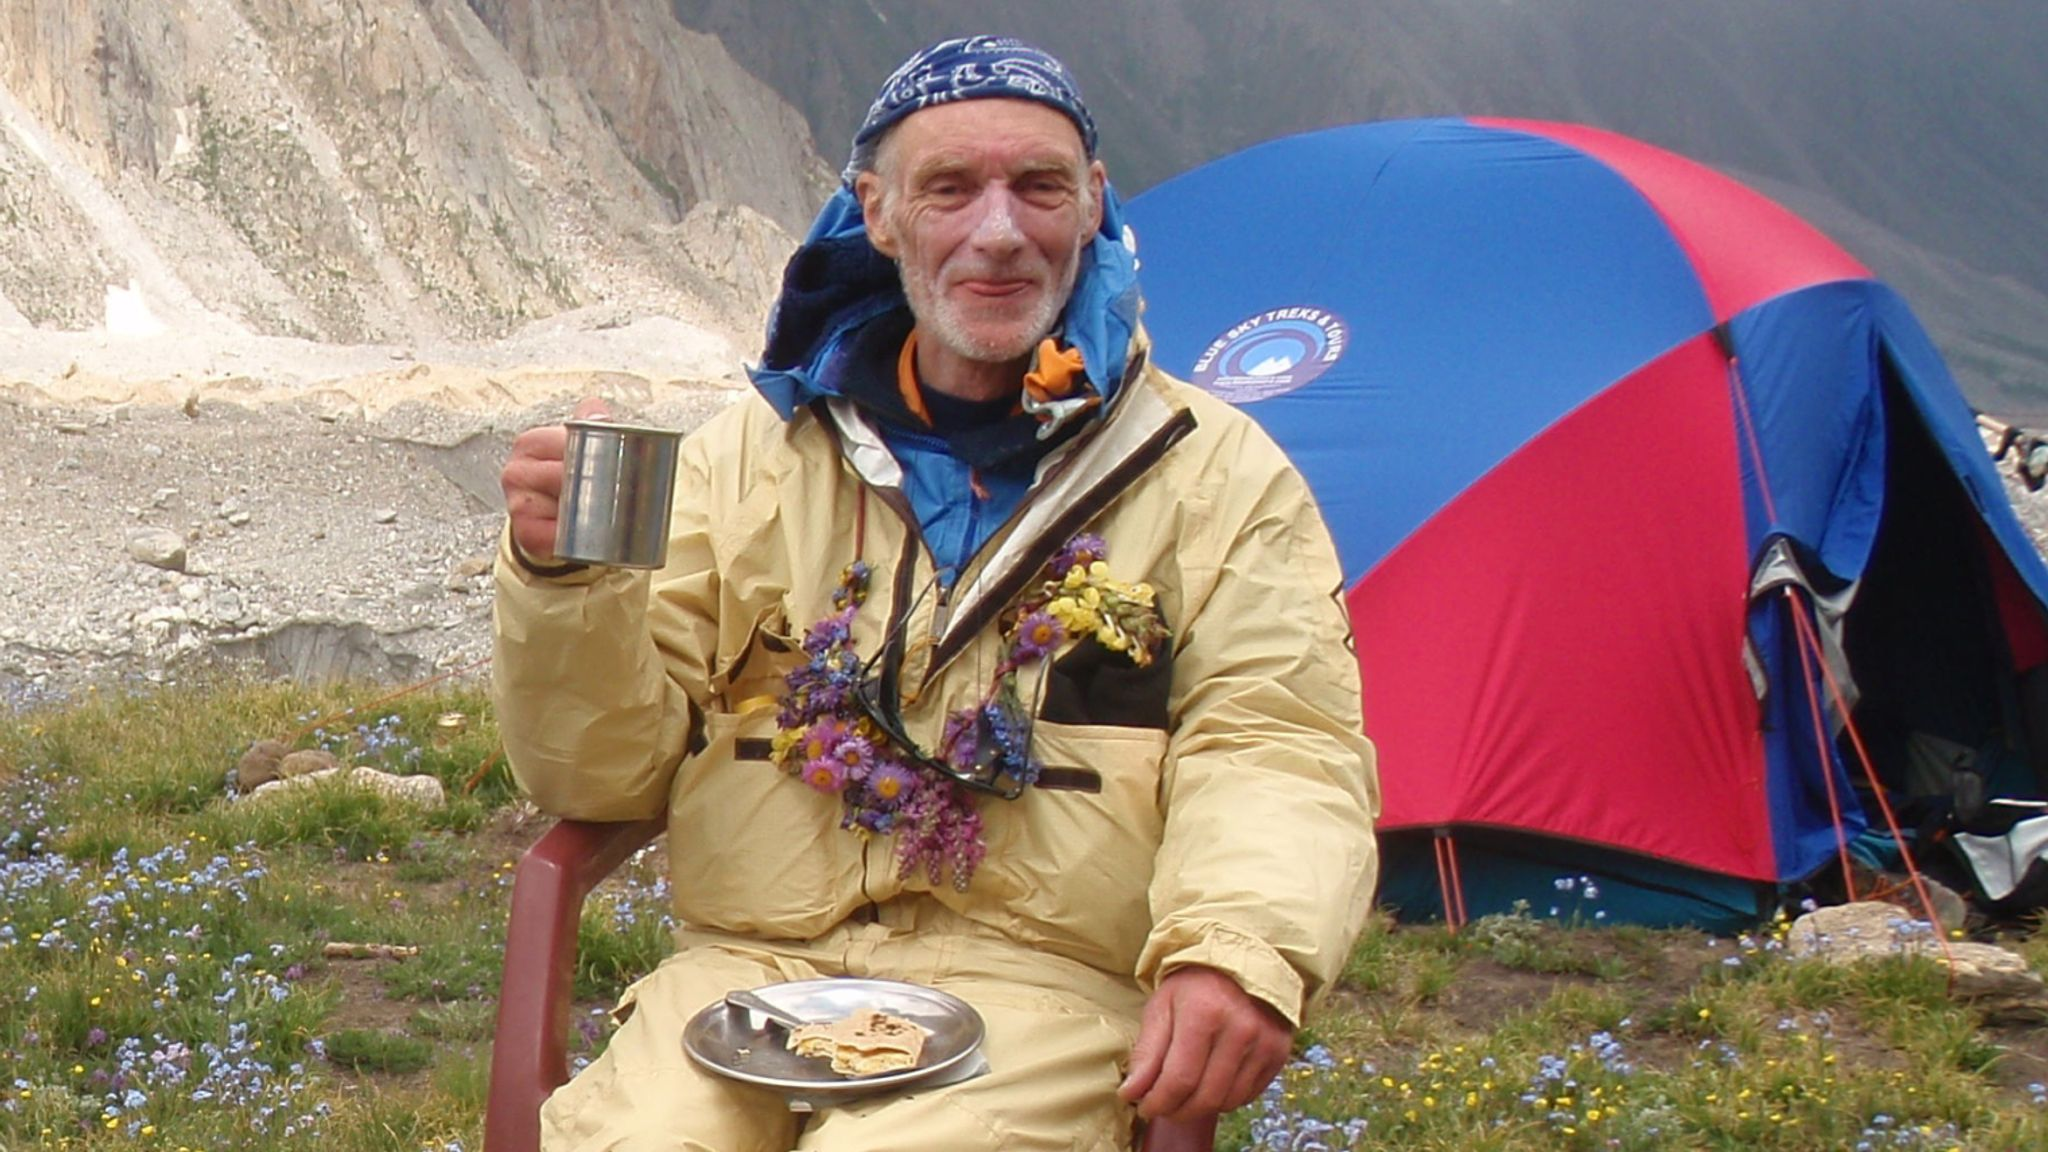 Popular mountain climber dies in avalanche